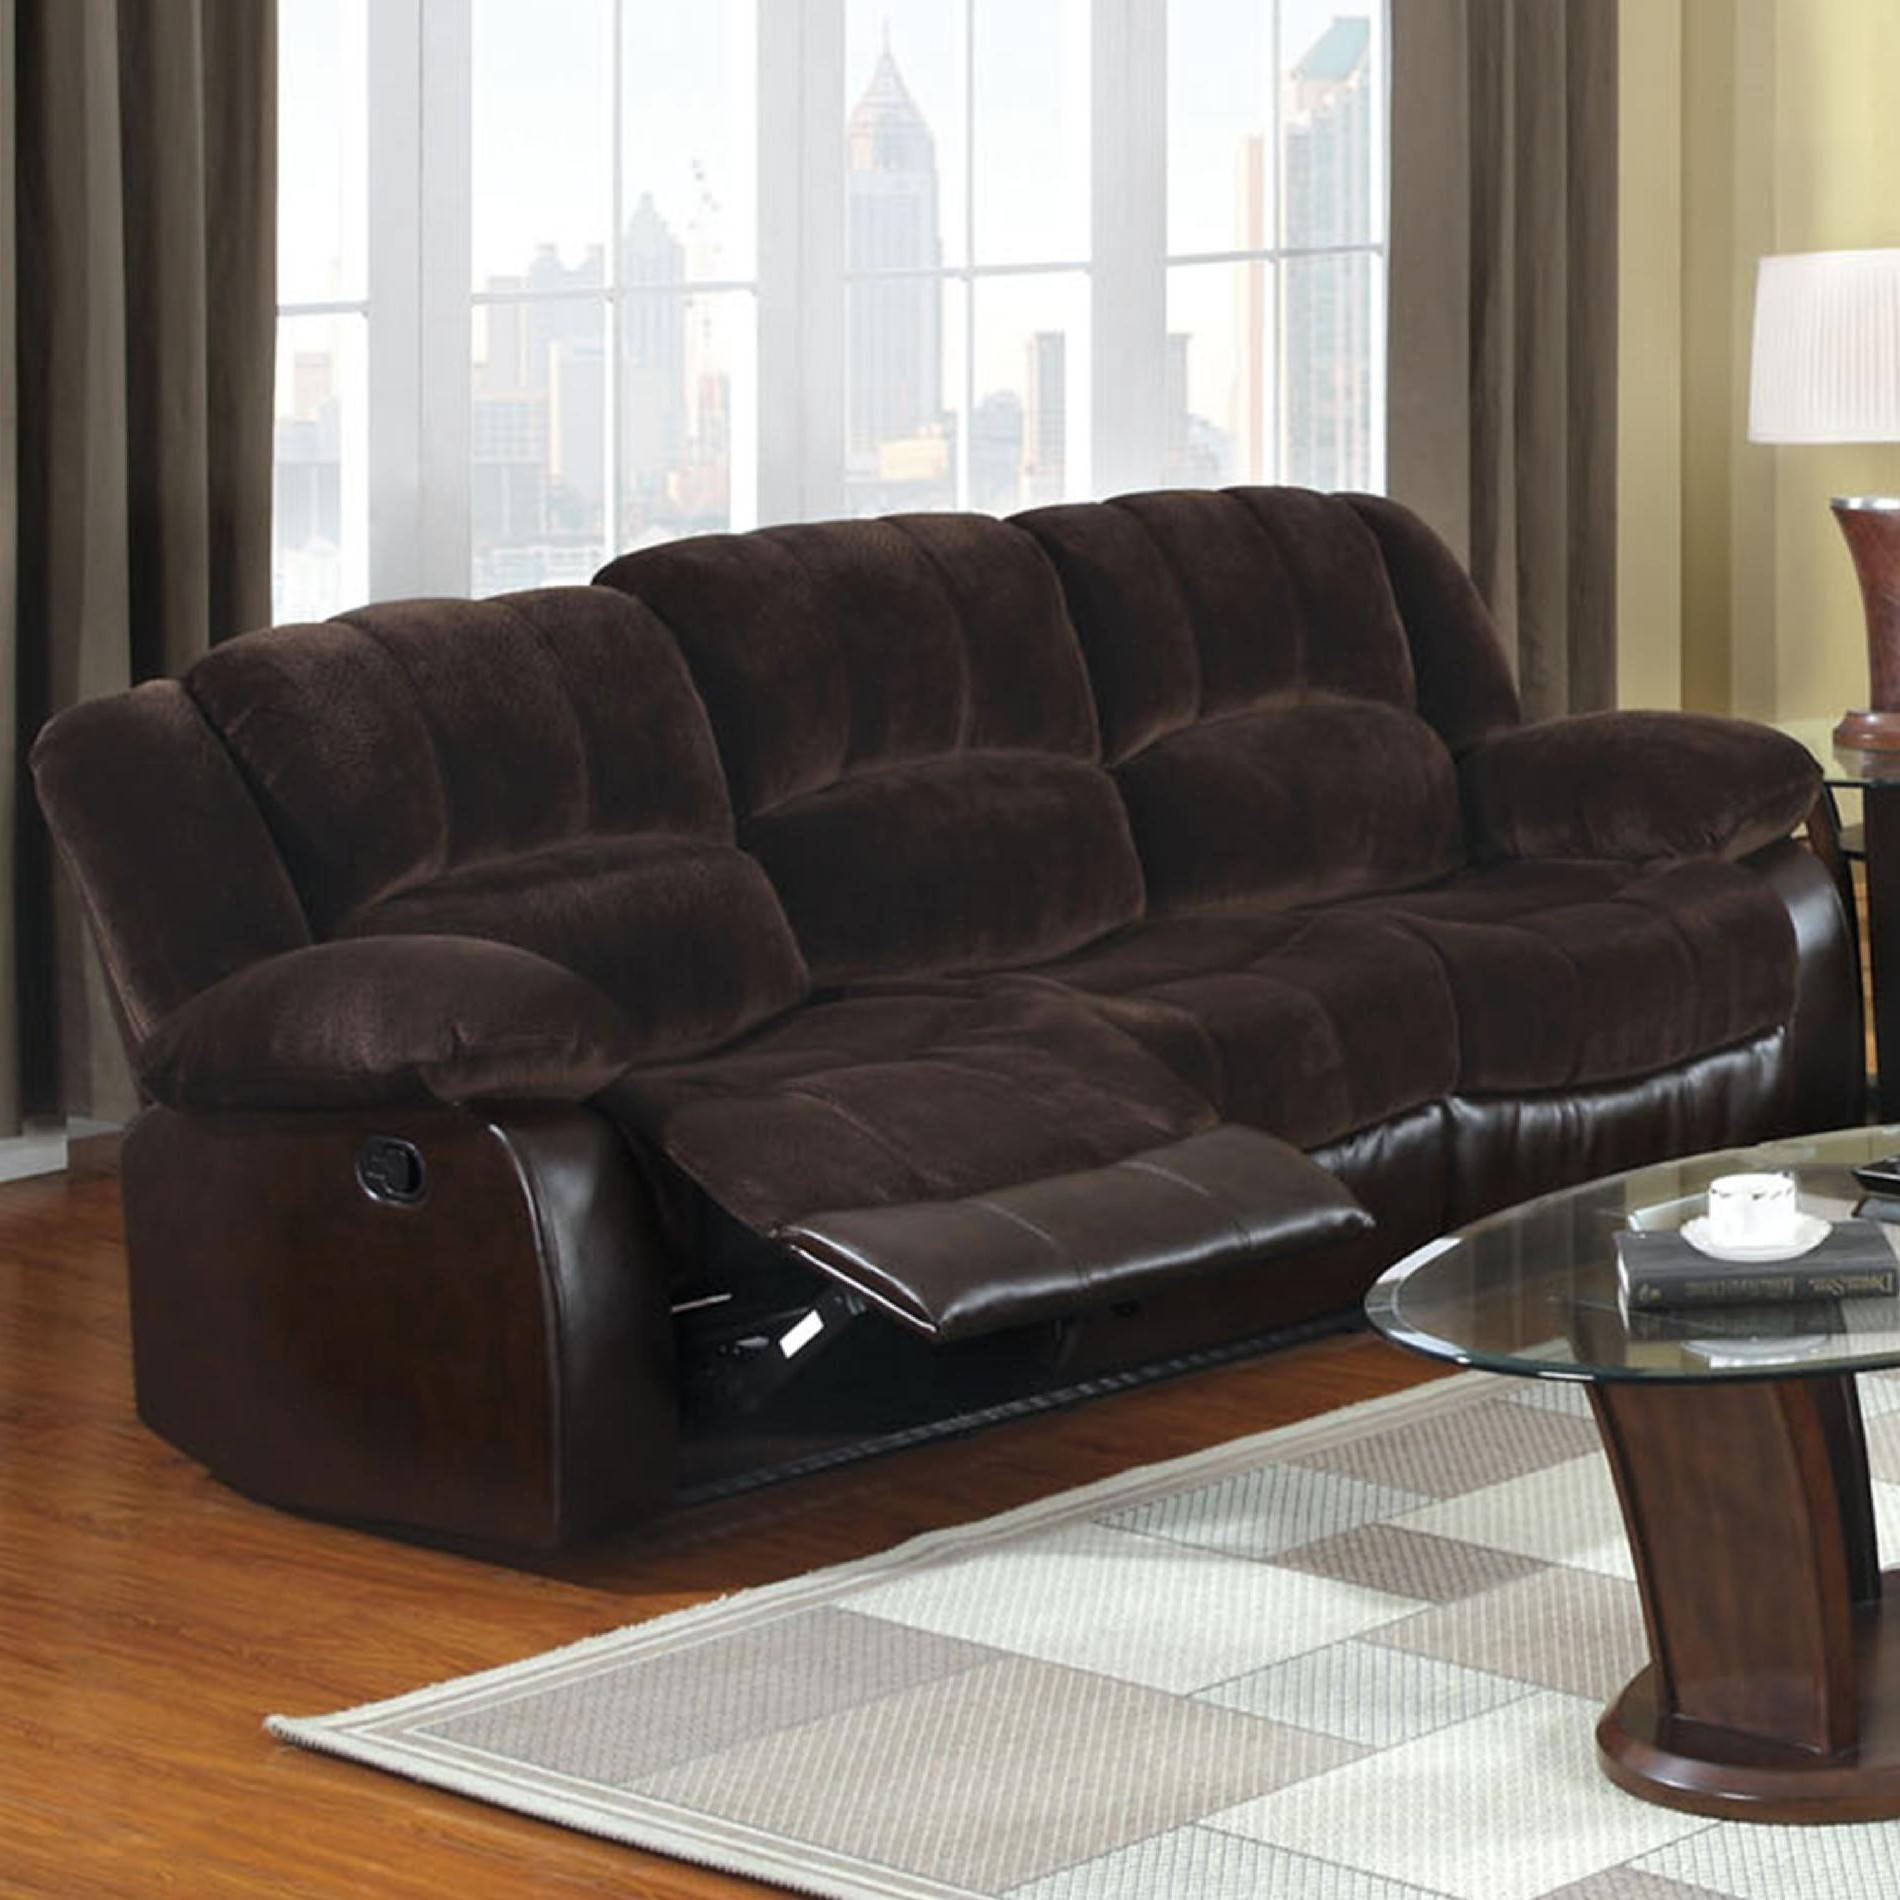 Sofas Center : Unusual Sears Reclining Sofa Images Design Celery in Unusual Sofas (Image 17 of 25)